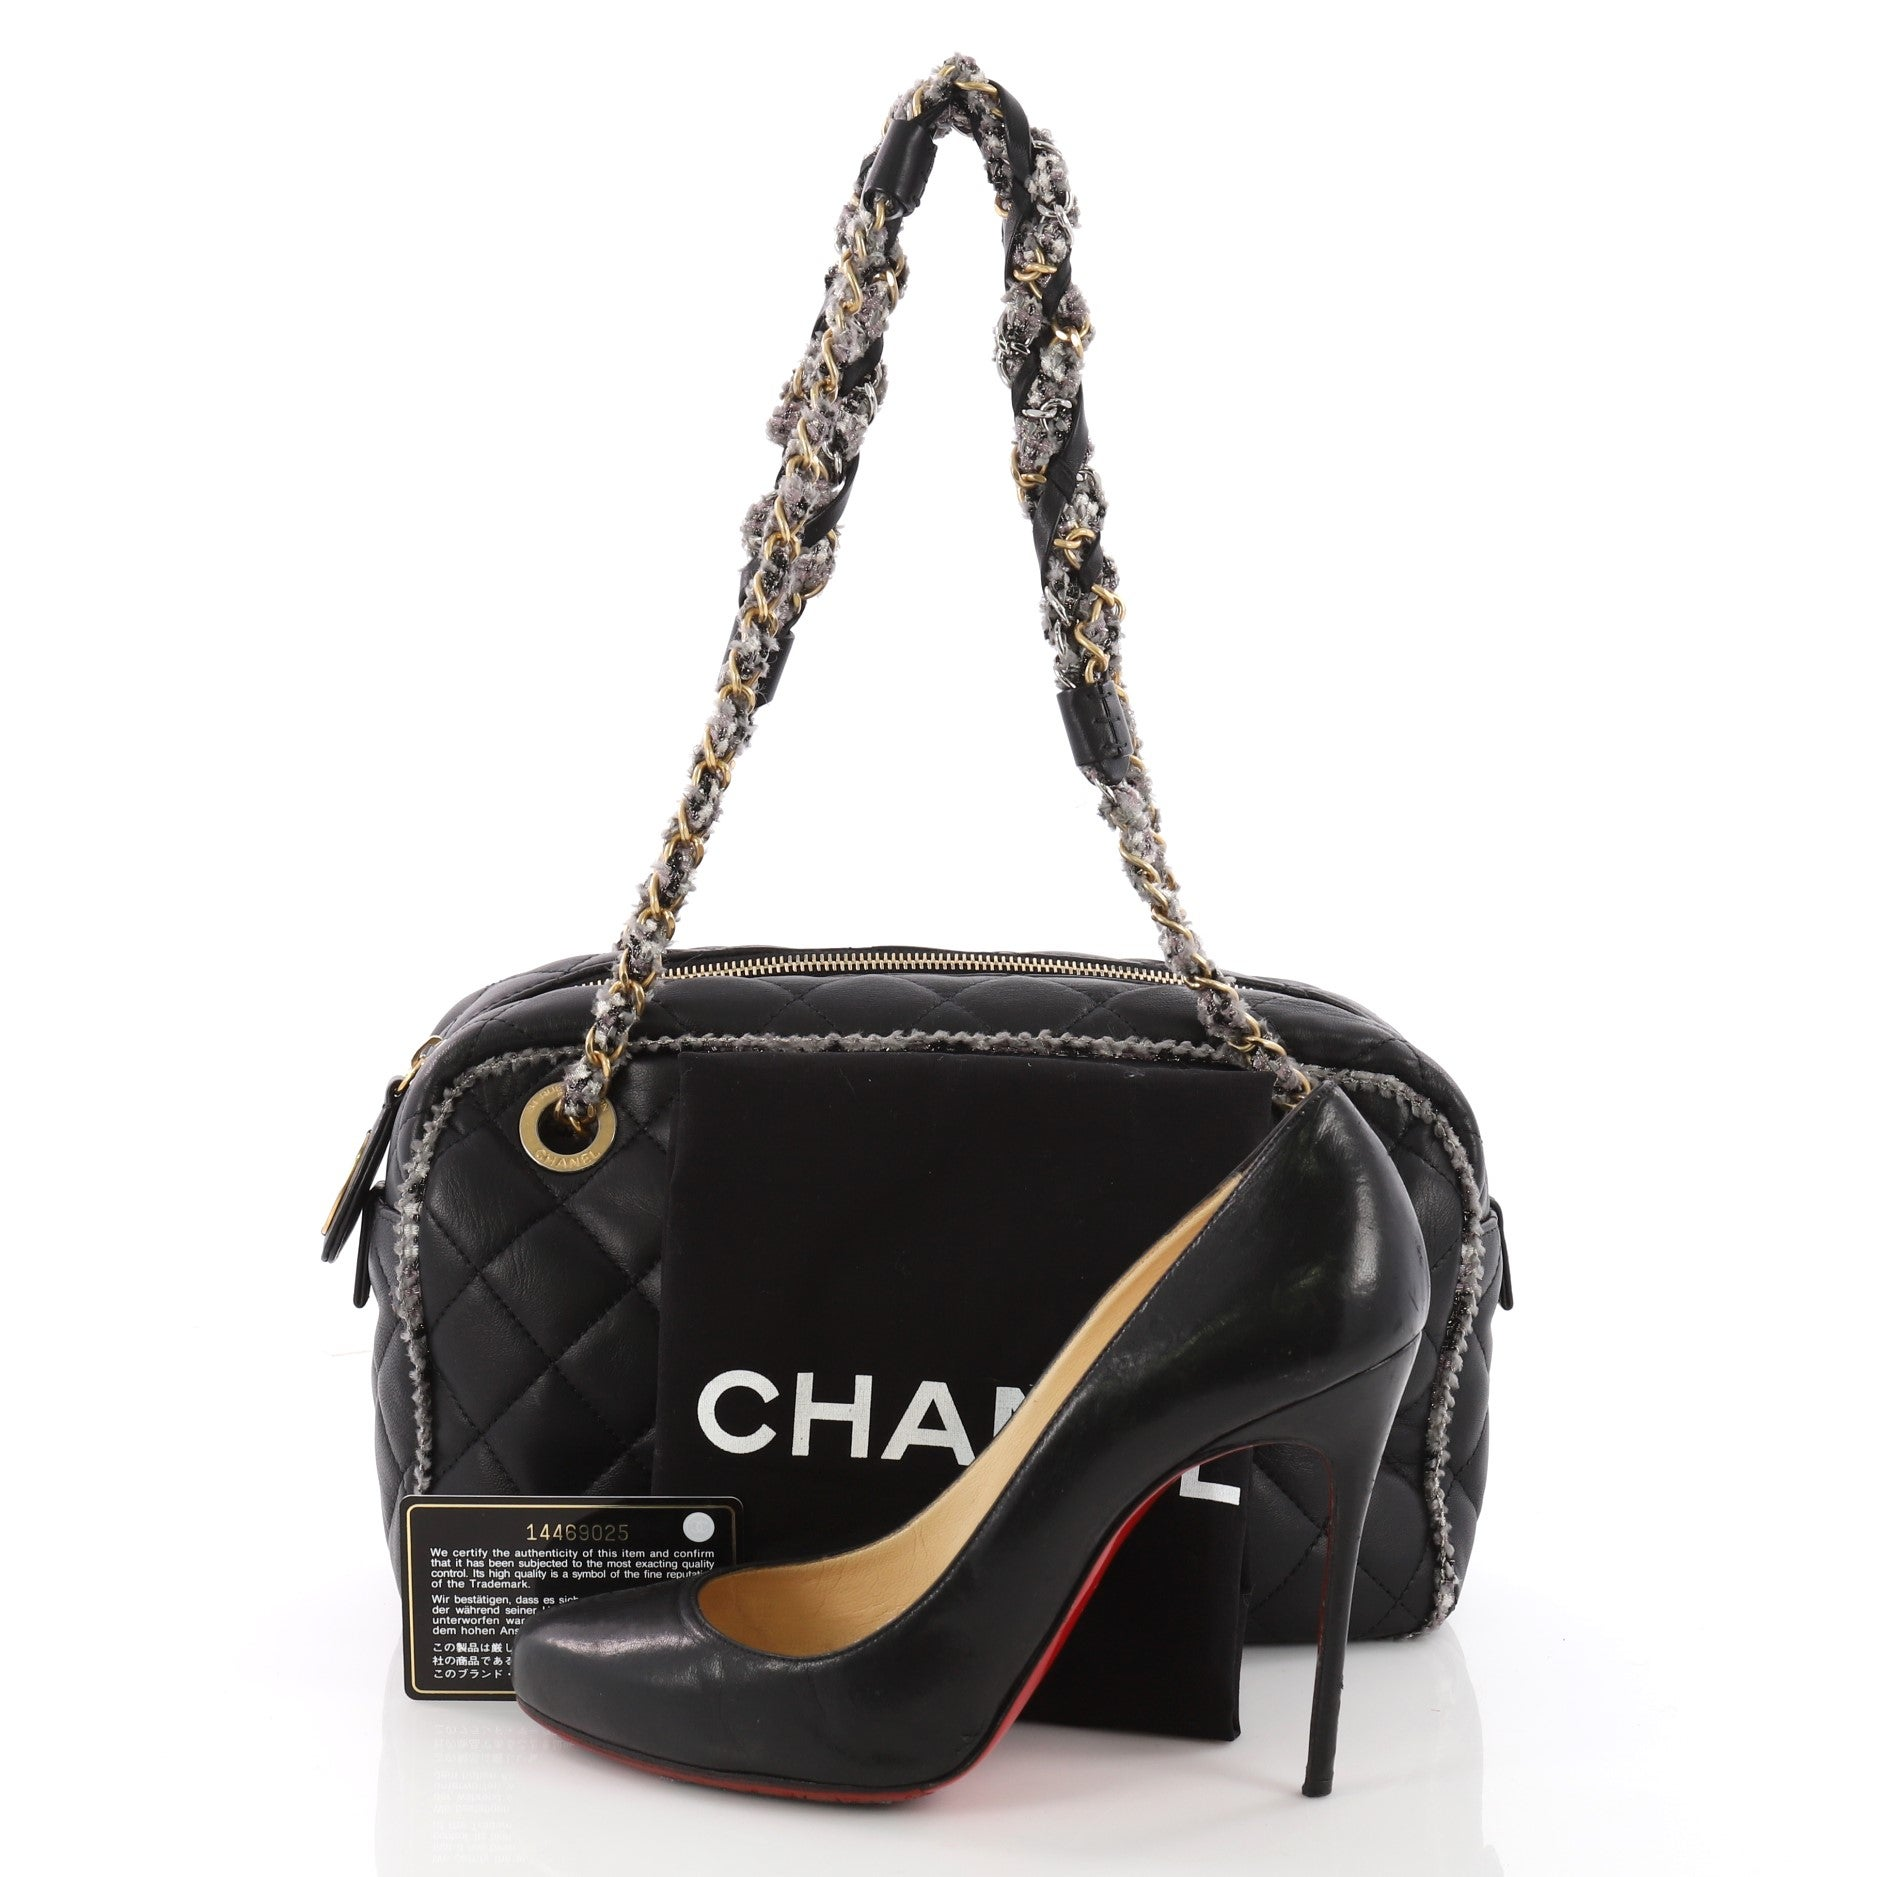 28f15dde89abef Chanel Tweed Chain Camera Bag Quilted Lambskin and Tweed Small at 1stdibs